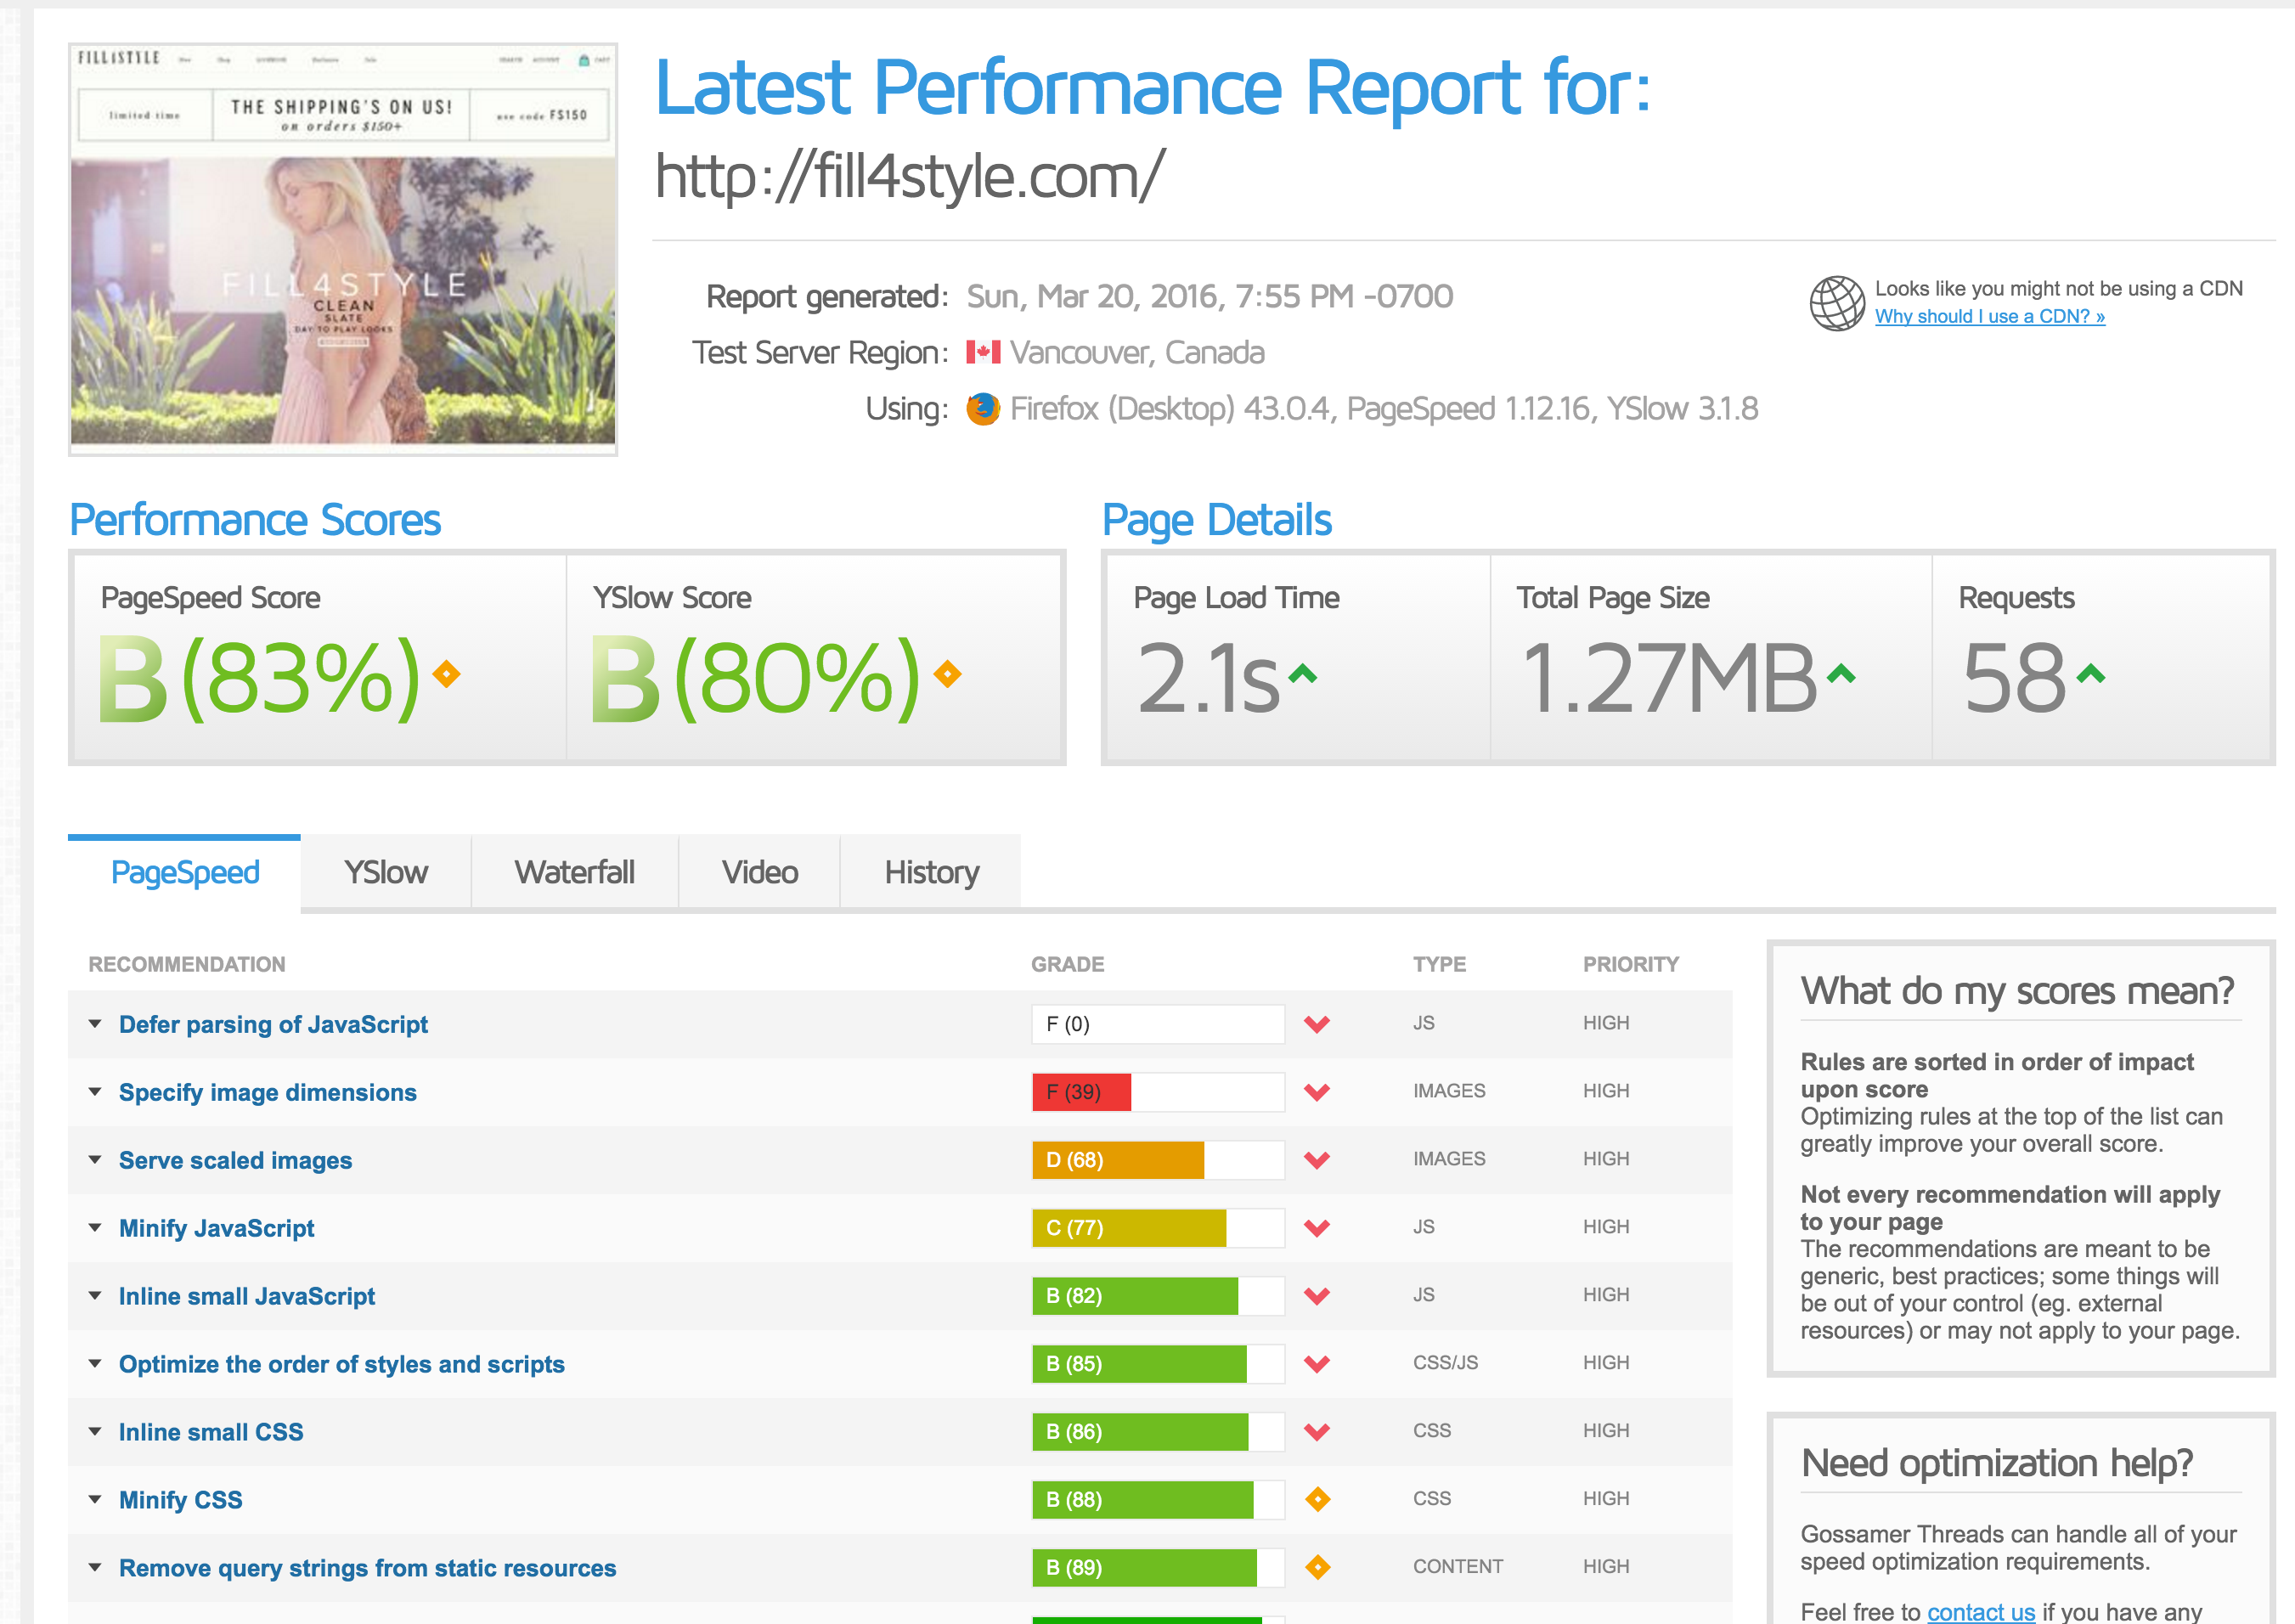 Latest_Performance_Report_for__http___fill4style_com____GTmetrix